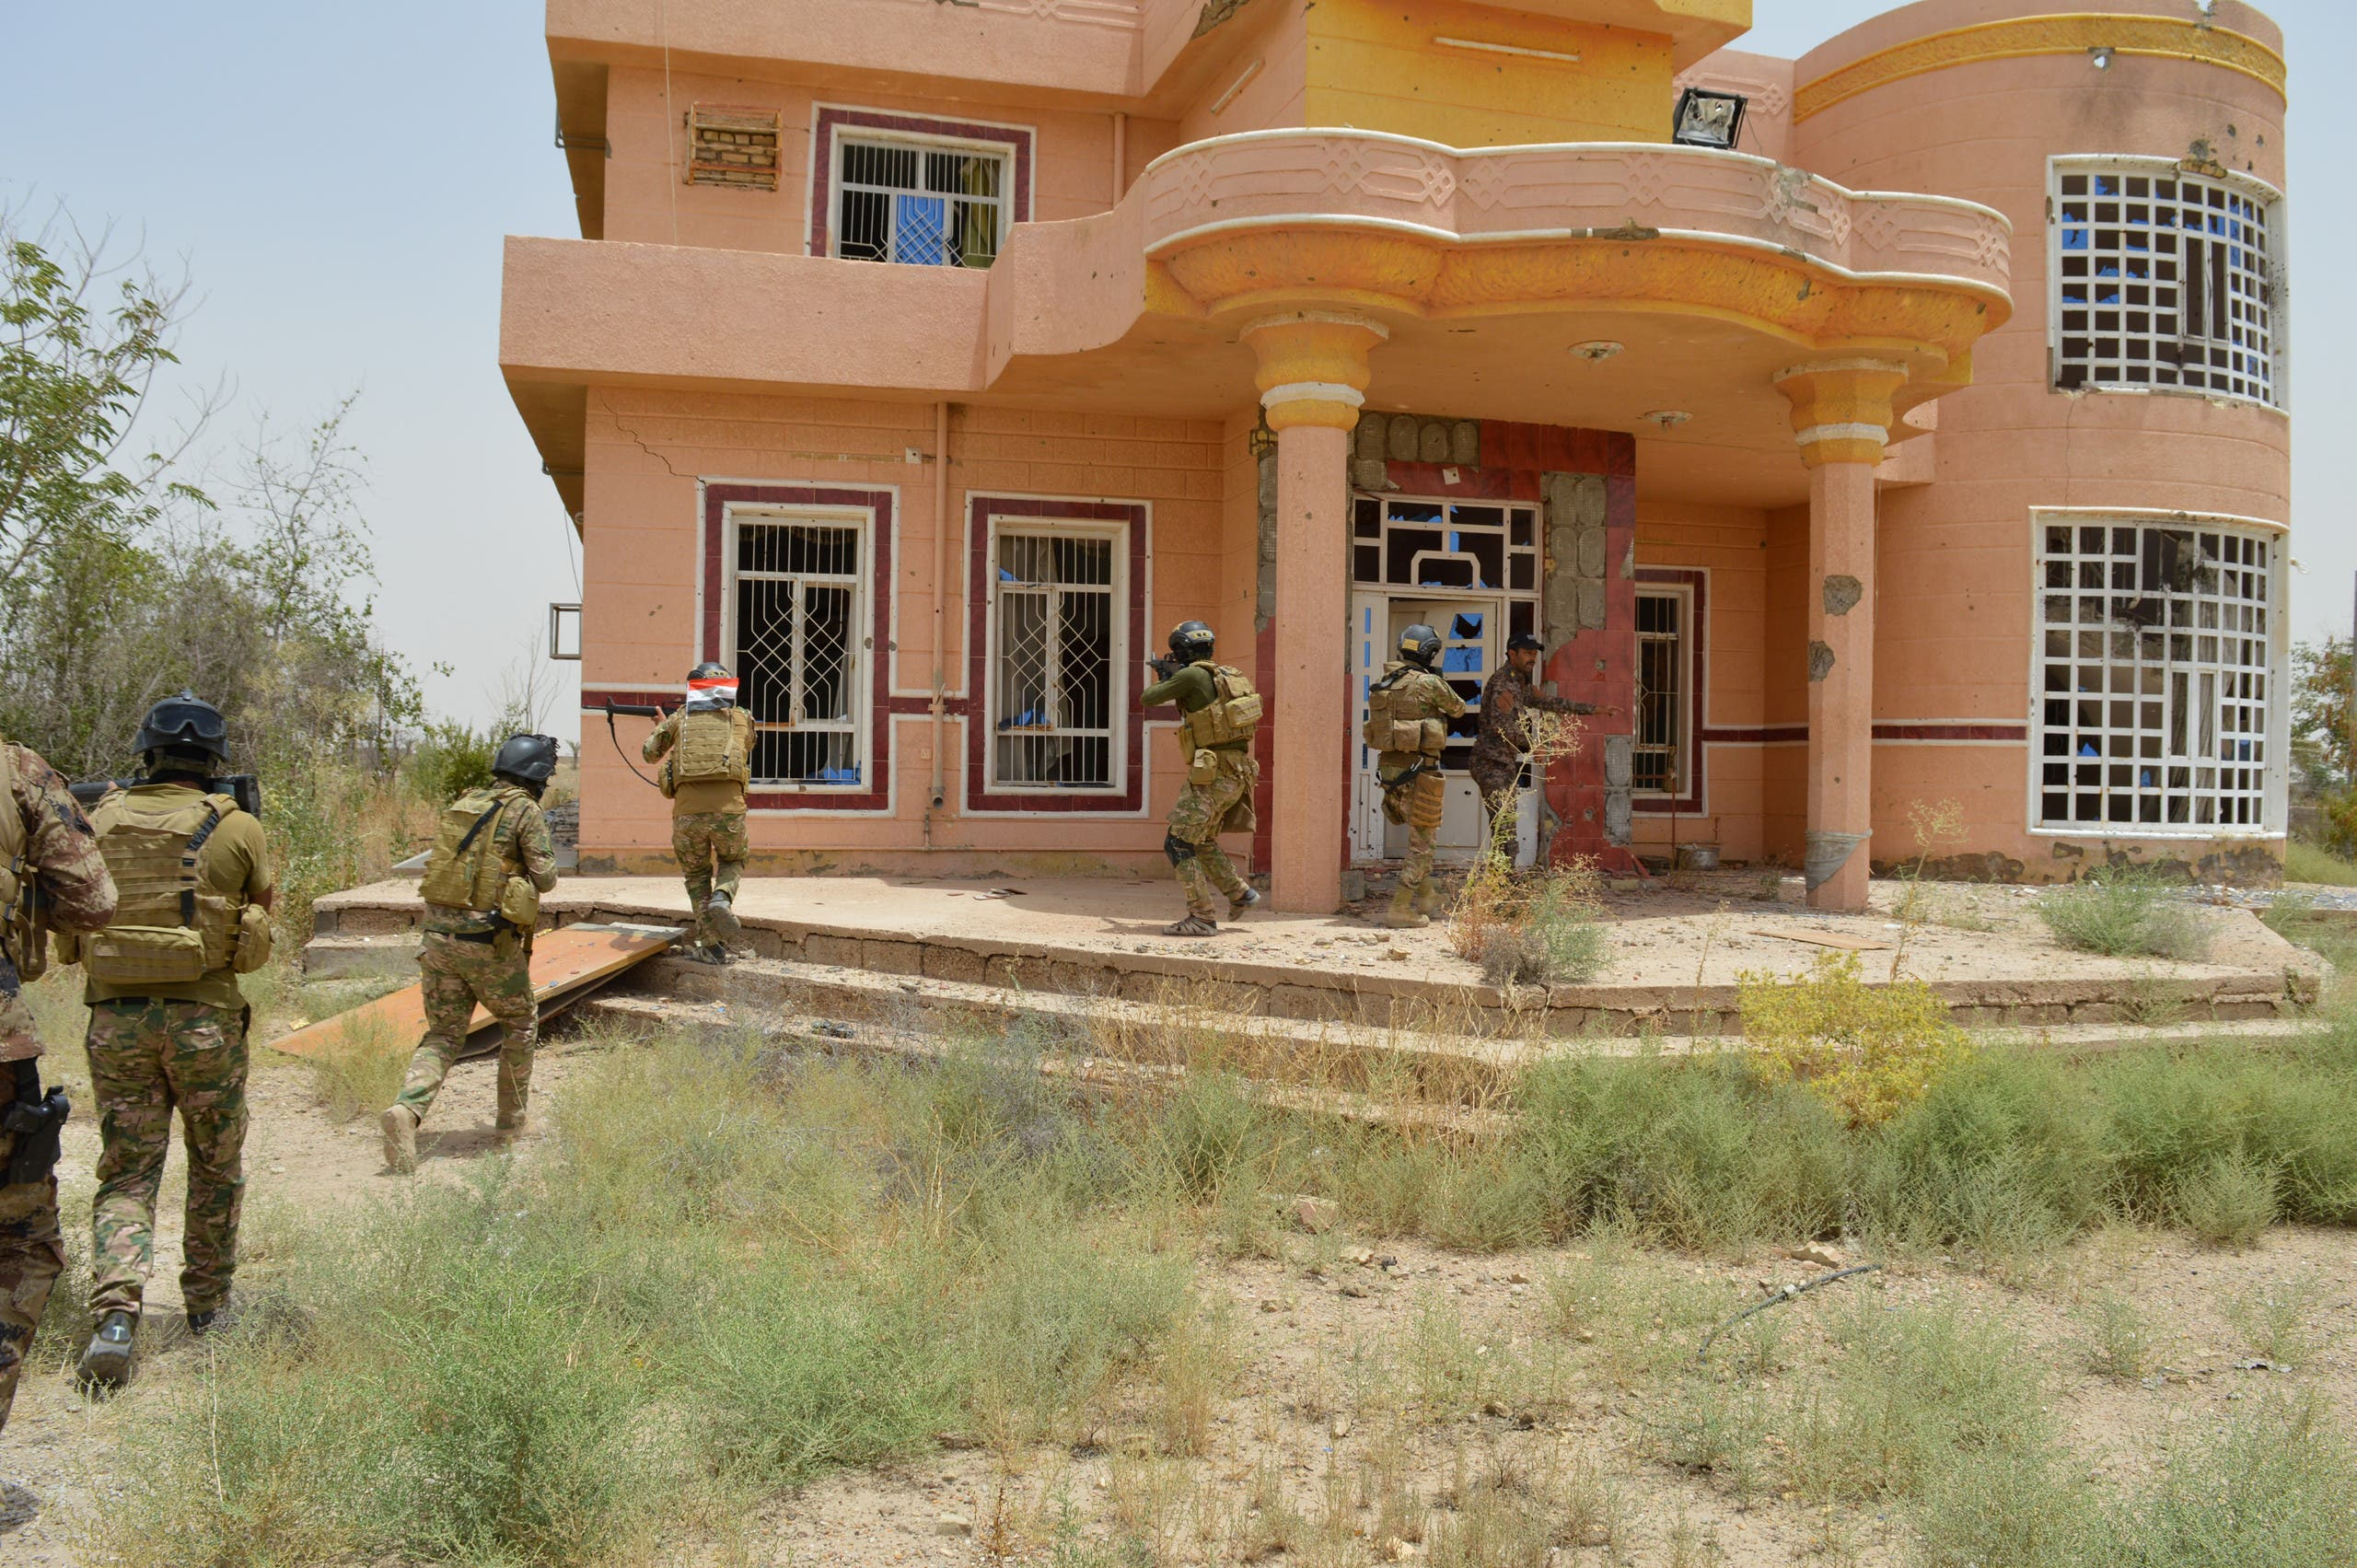 Iraqi security forces personnel walk with their weapons as they inspect a house south of Falluja, Iraq, June 6, 2016.